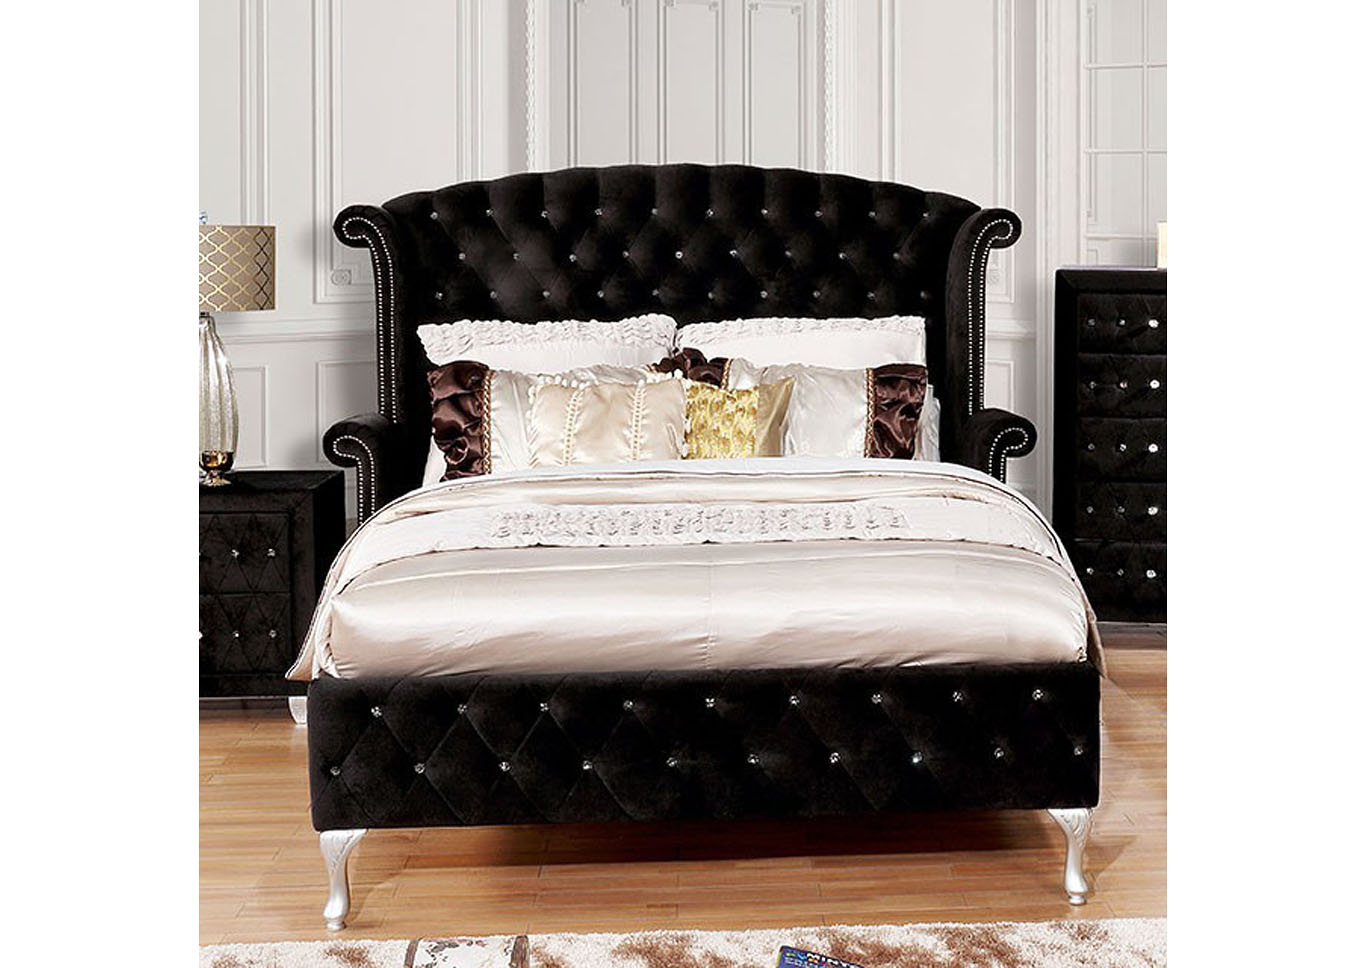 Alzire Black Upholstered Eastern King Platform Bed,Furniture of America